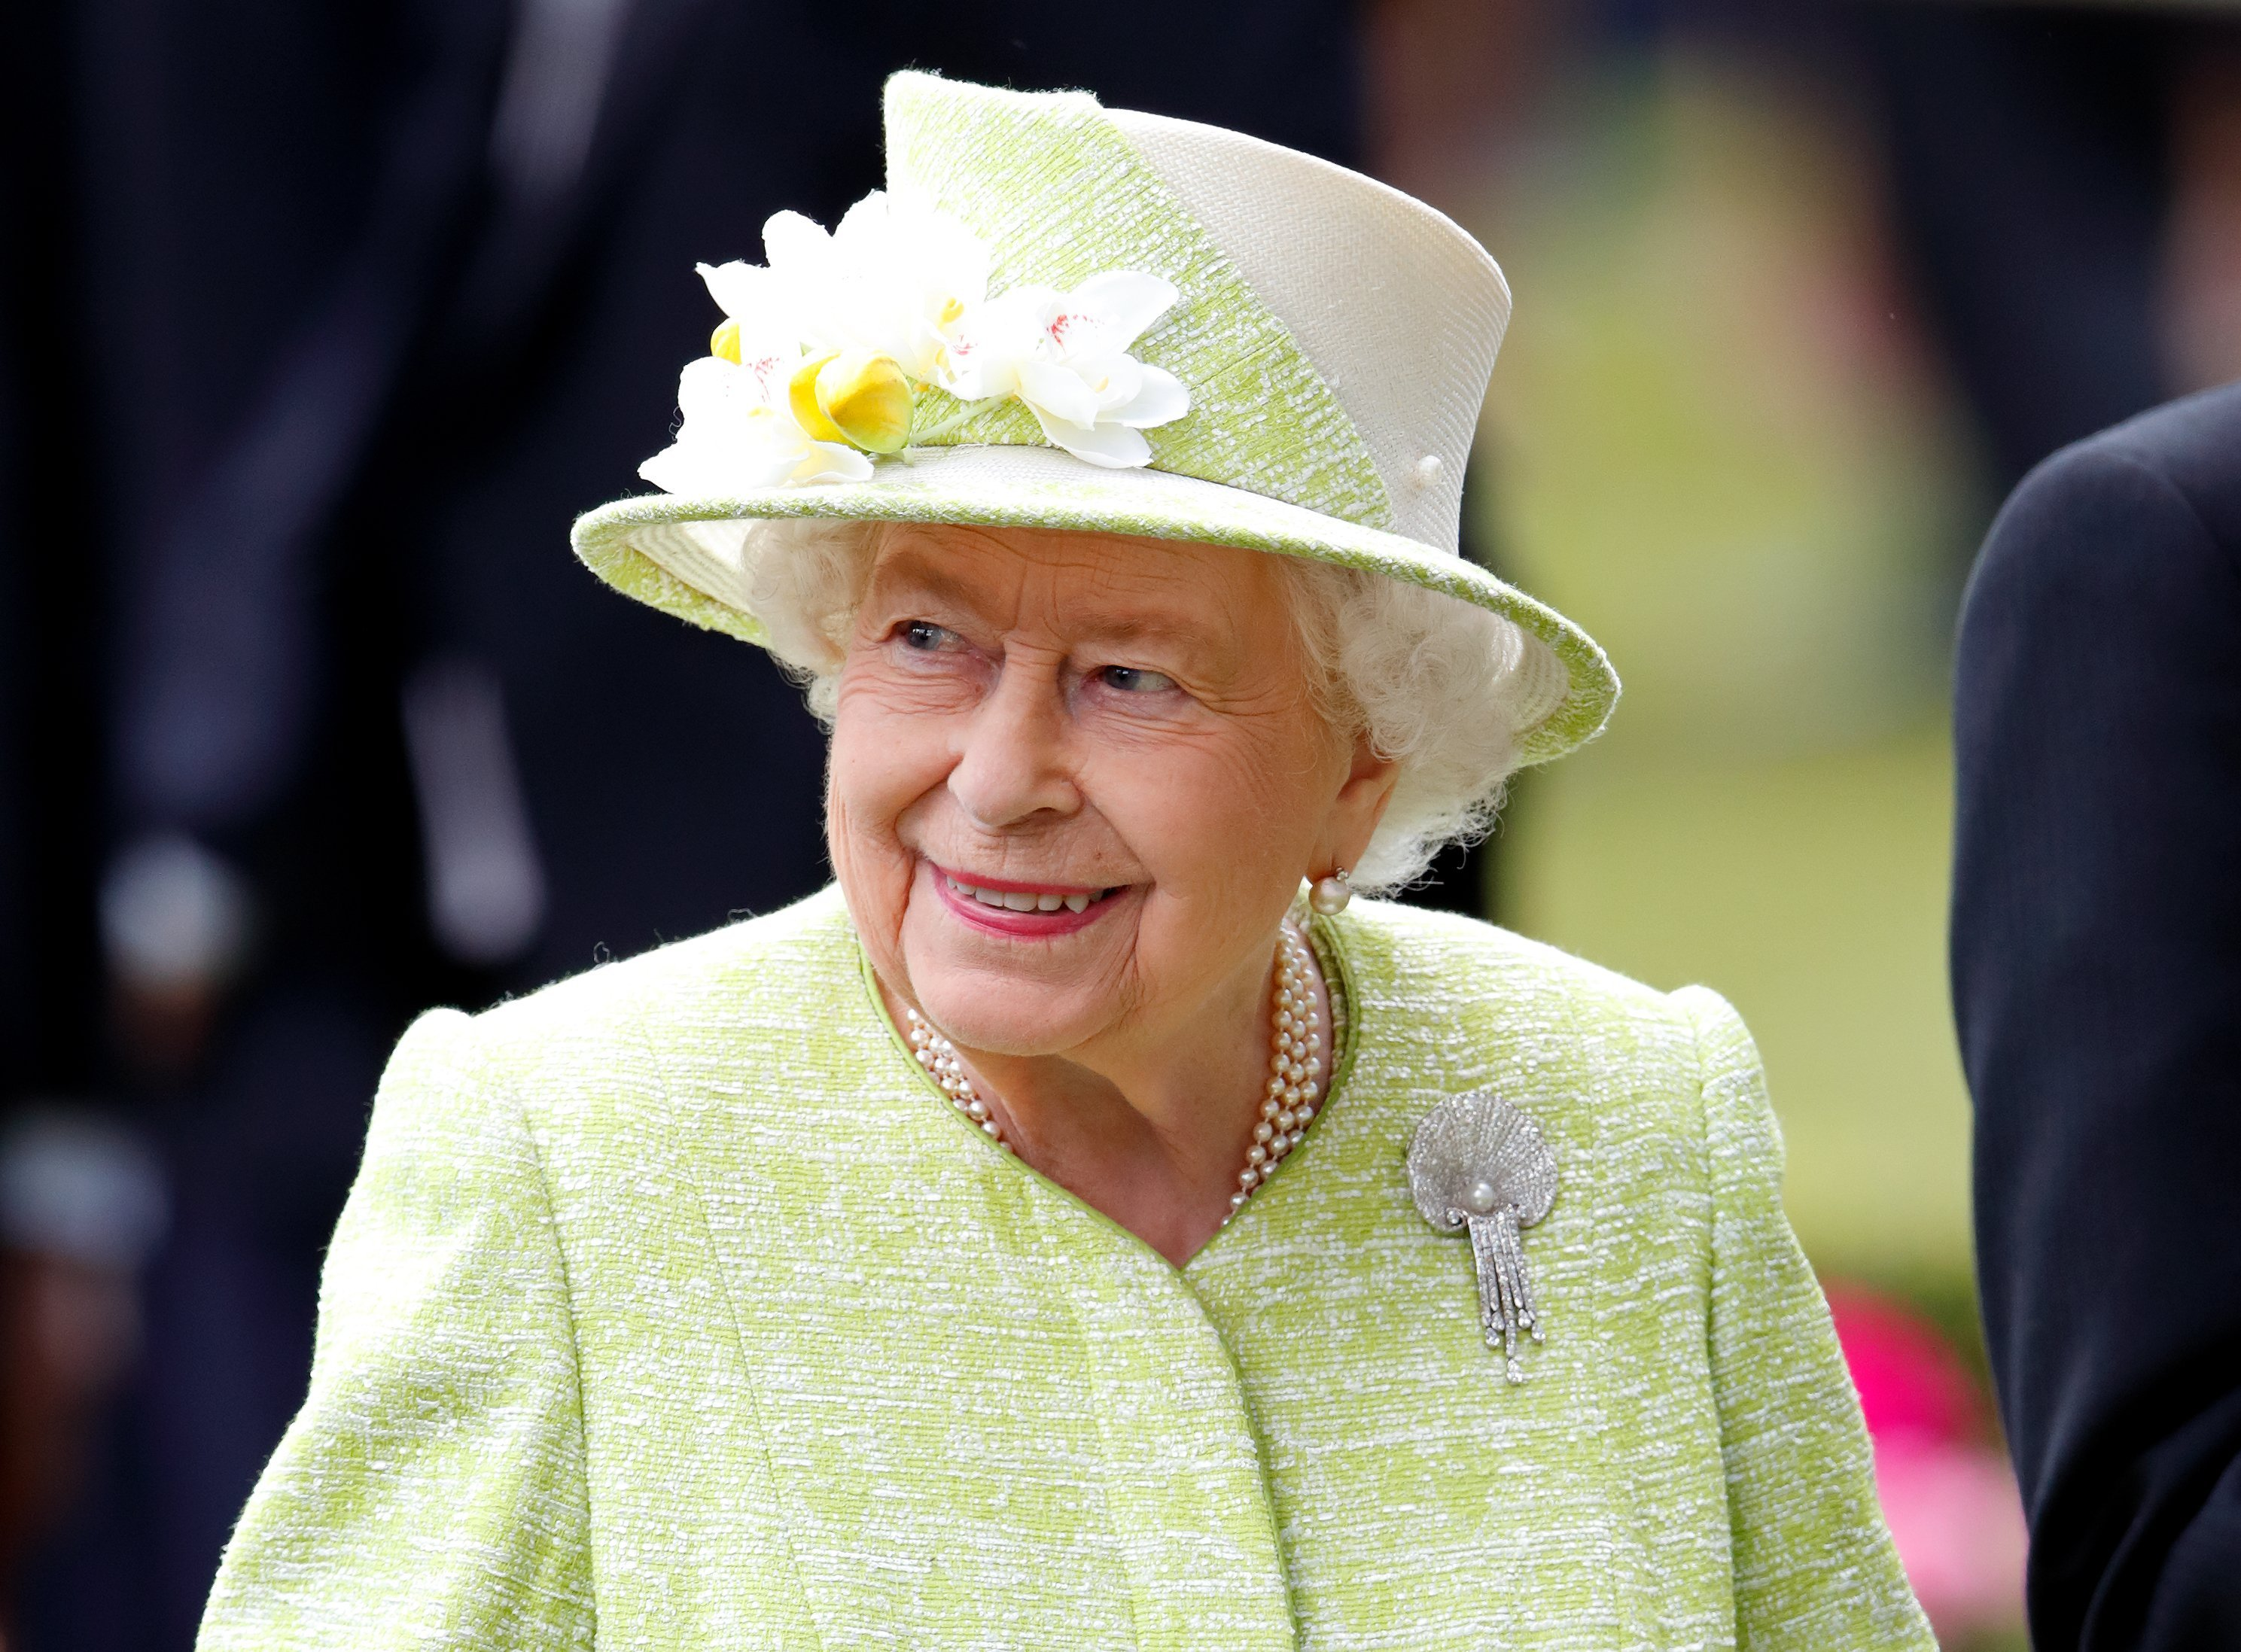 Queen Elizabeth II attends day five of Royal Ascot at Ascot Racecourse on June 22, 2019 | Photo: GettyImages